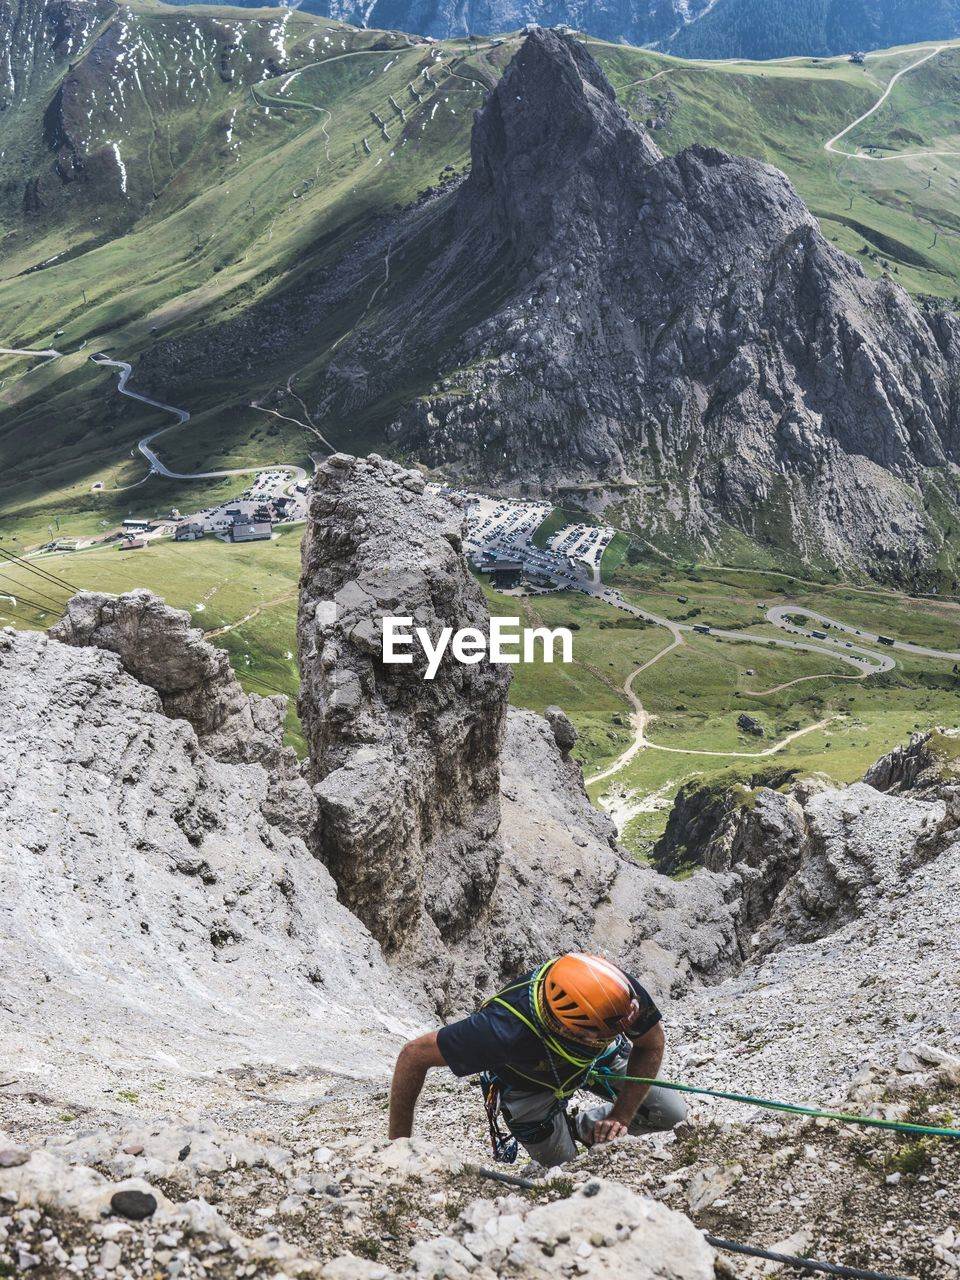 mountain, rock, rock - object, solid, climbing, leisure activity, adventure, one person, nature, day, lifestyles, real people, rock formation, men, activity, sport, helmet, mountain range, scenics - nature, beauty in nature, formation, outdoors